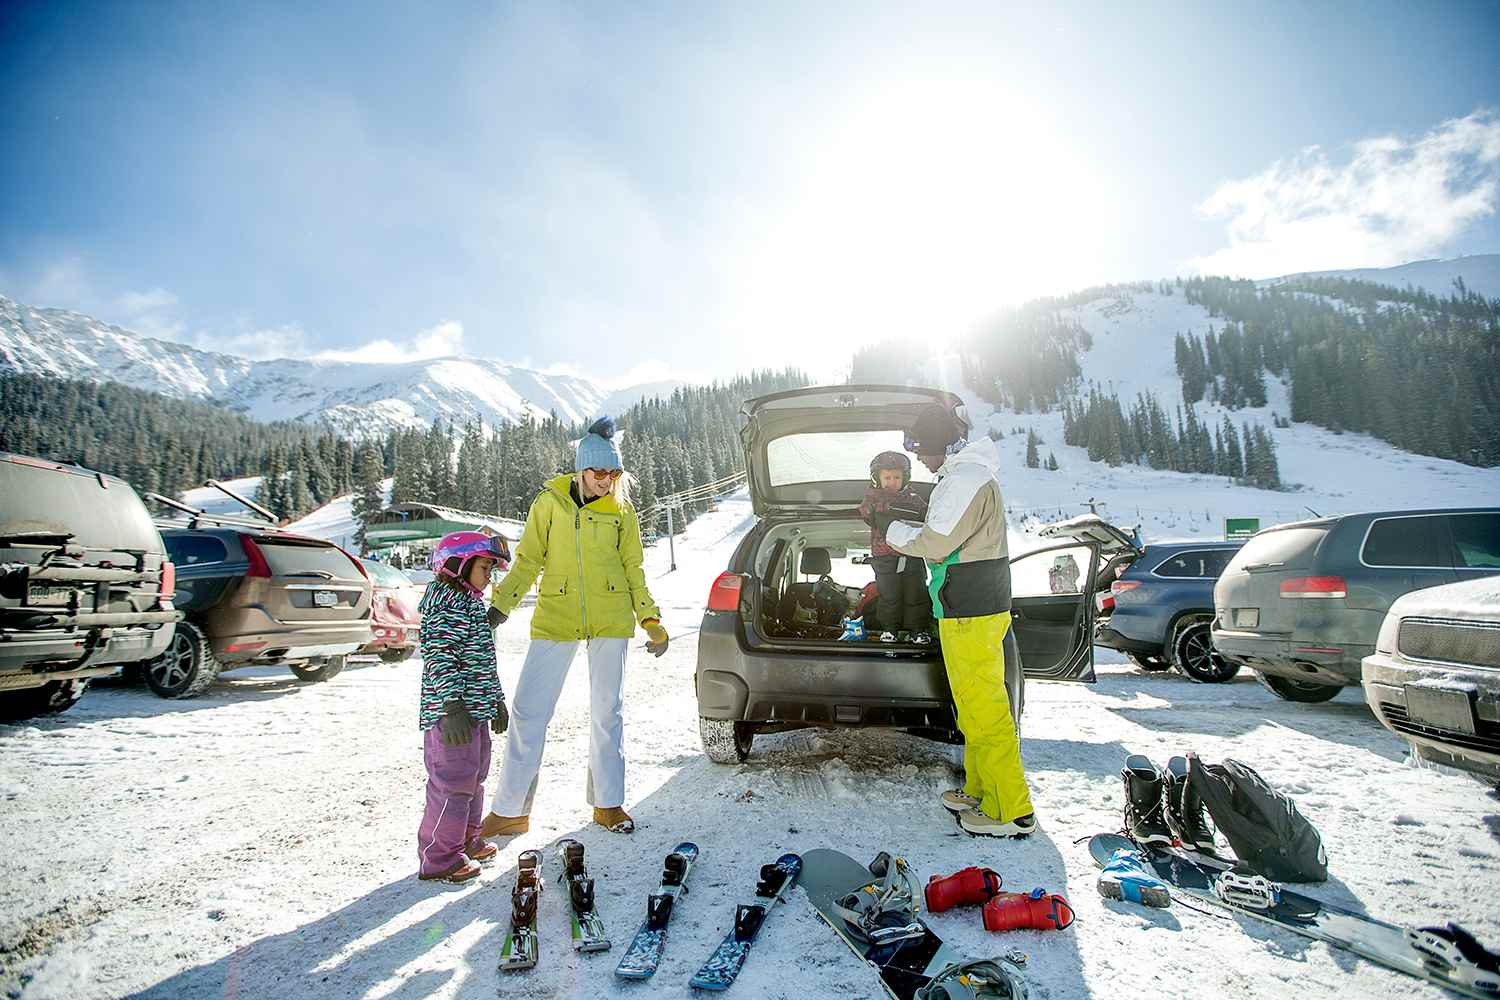 Family at a parking lot unloading ski and snowboard equipment out of their car